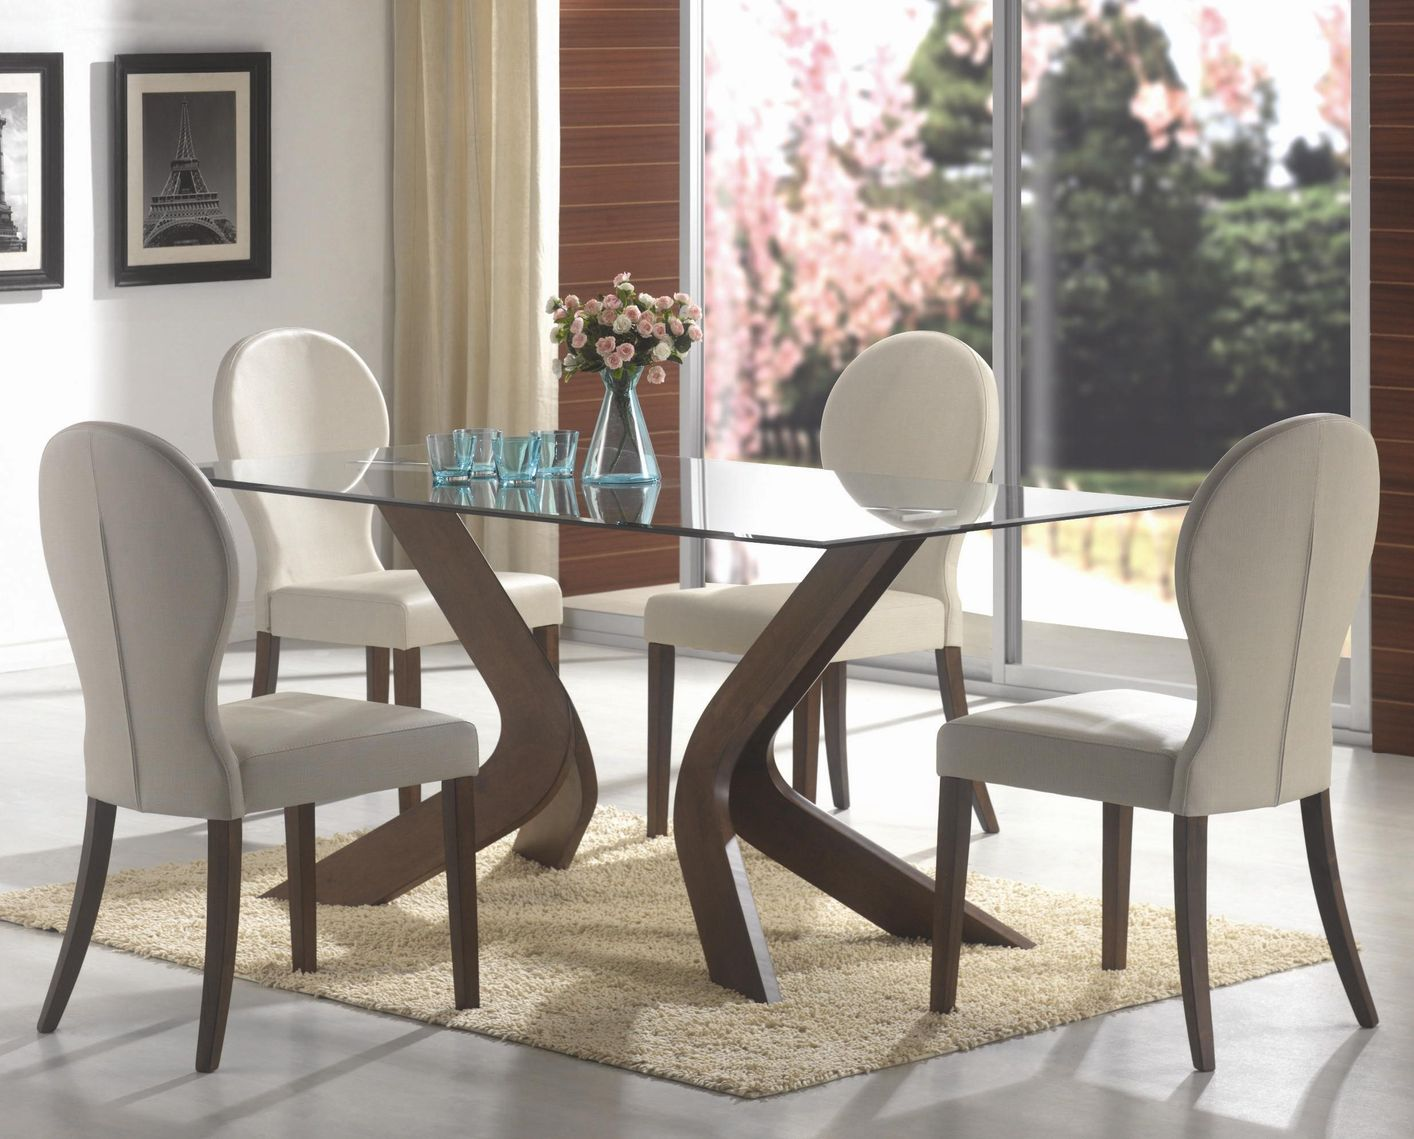 Attrayant San Vicente Walnut Wood And Glass Dining Table Set